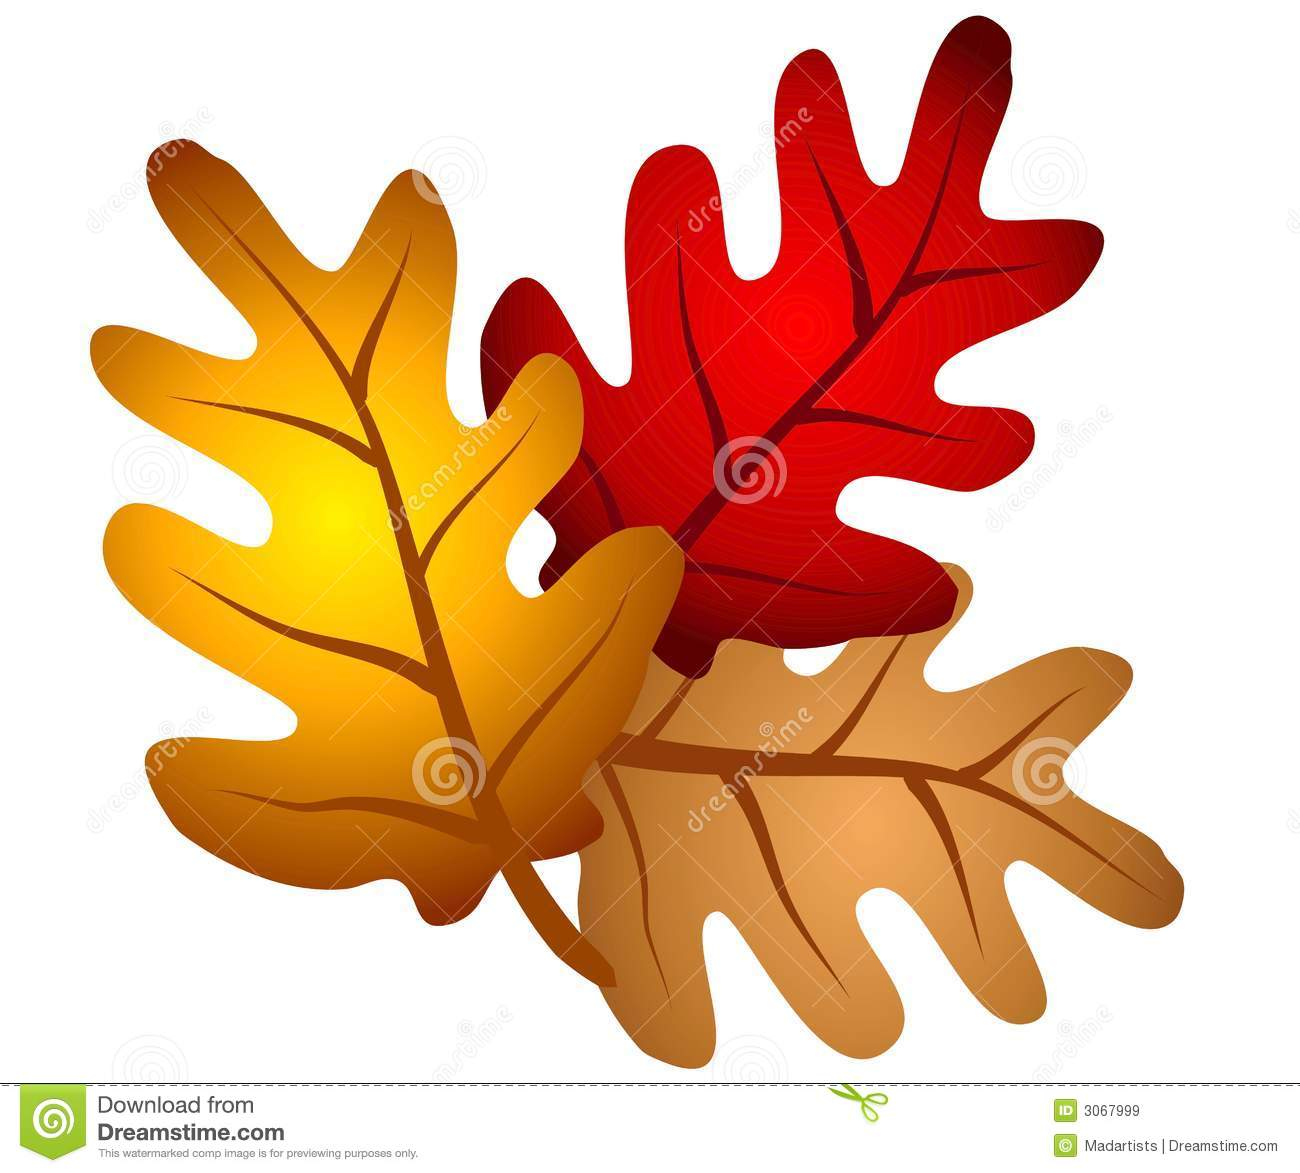 hight resolution of a clip art illustration of an isolated arrangement of autumn oak tree leaves in red gold and brown